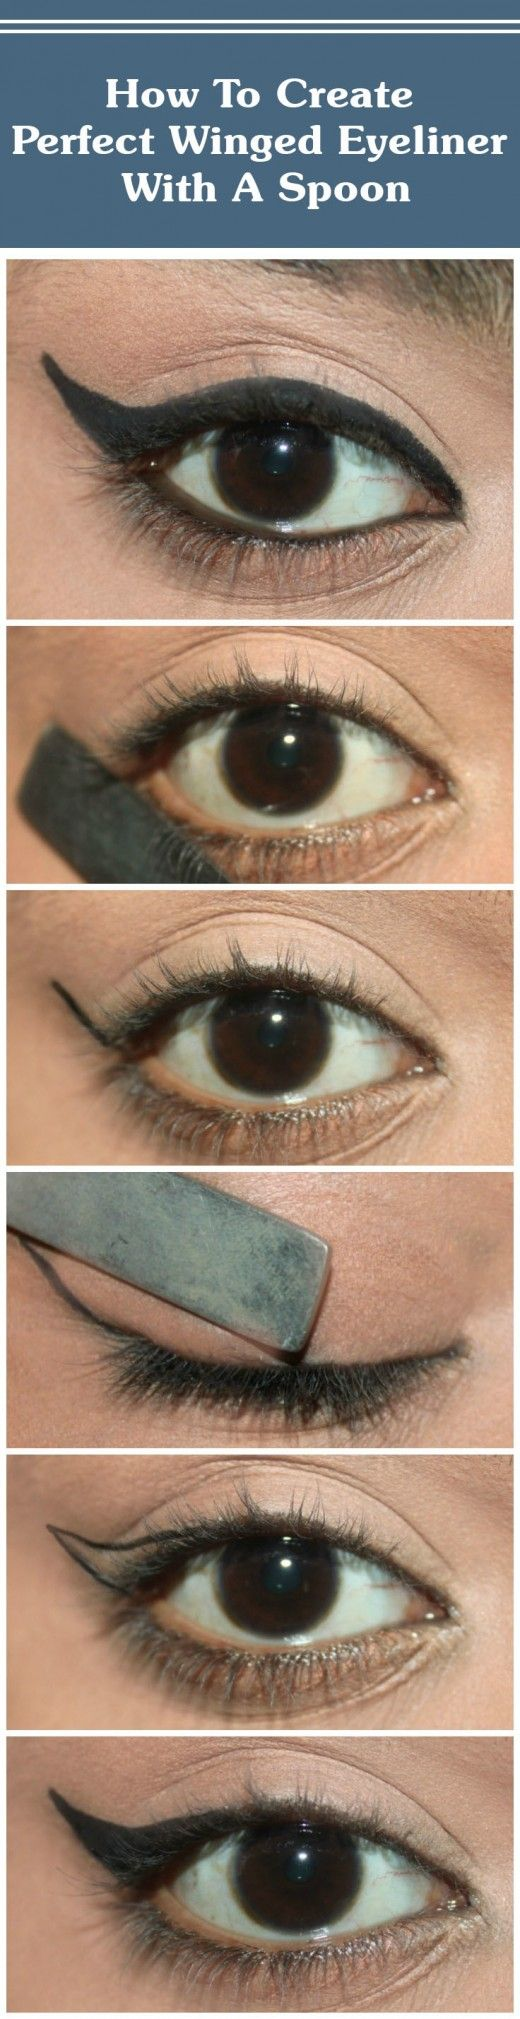 How To Create Perfect Winged Eyeliner With A Spoon?